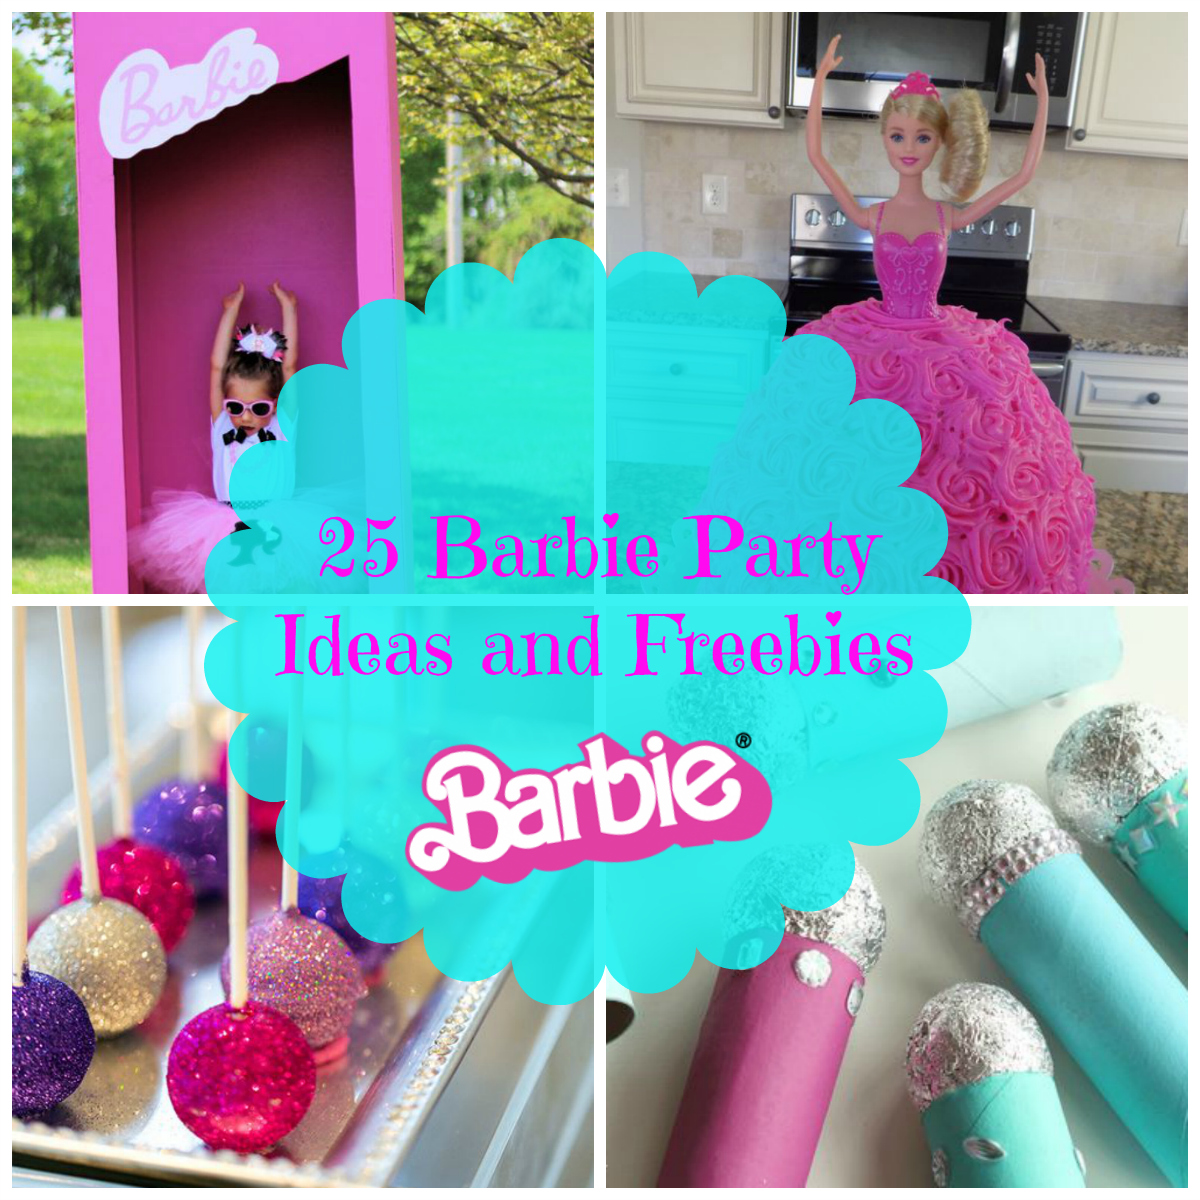 25 Barbie Party Ideas and Freebies